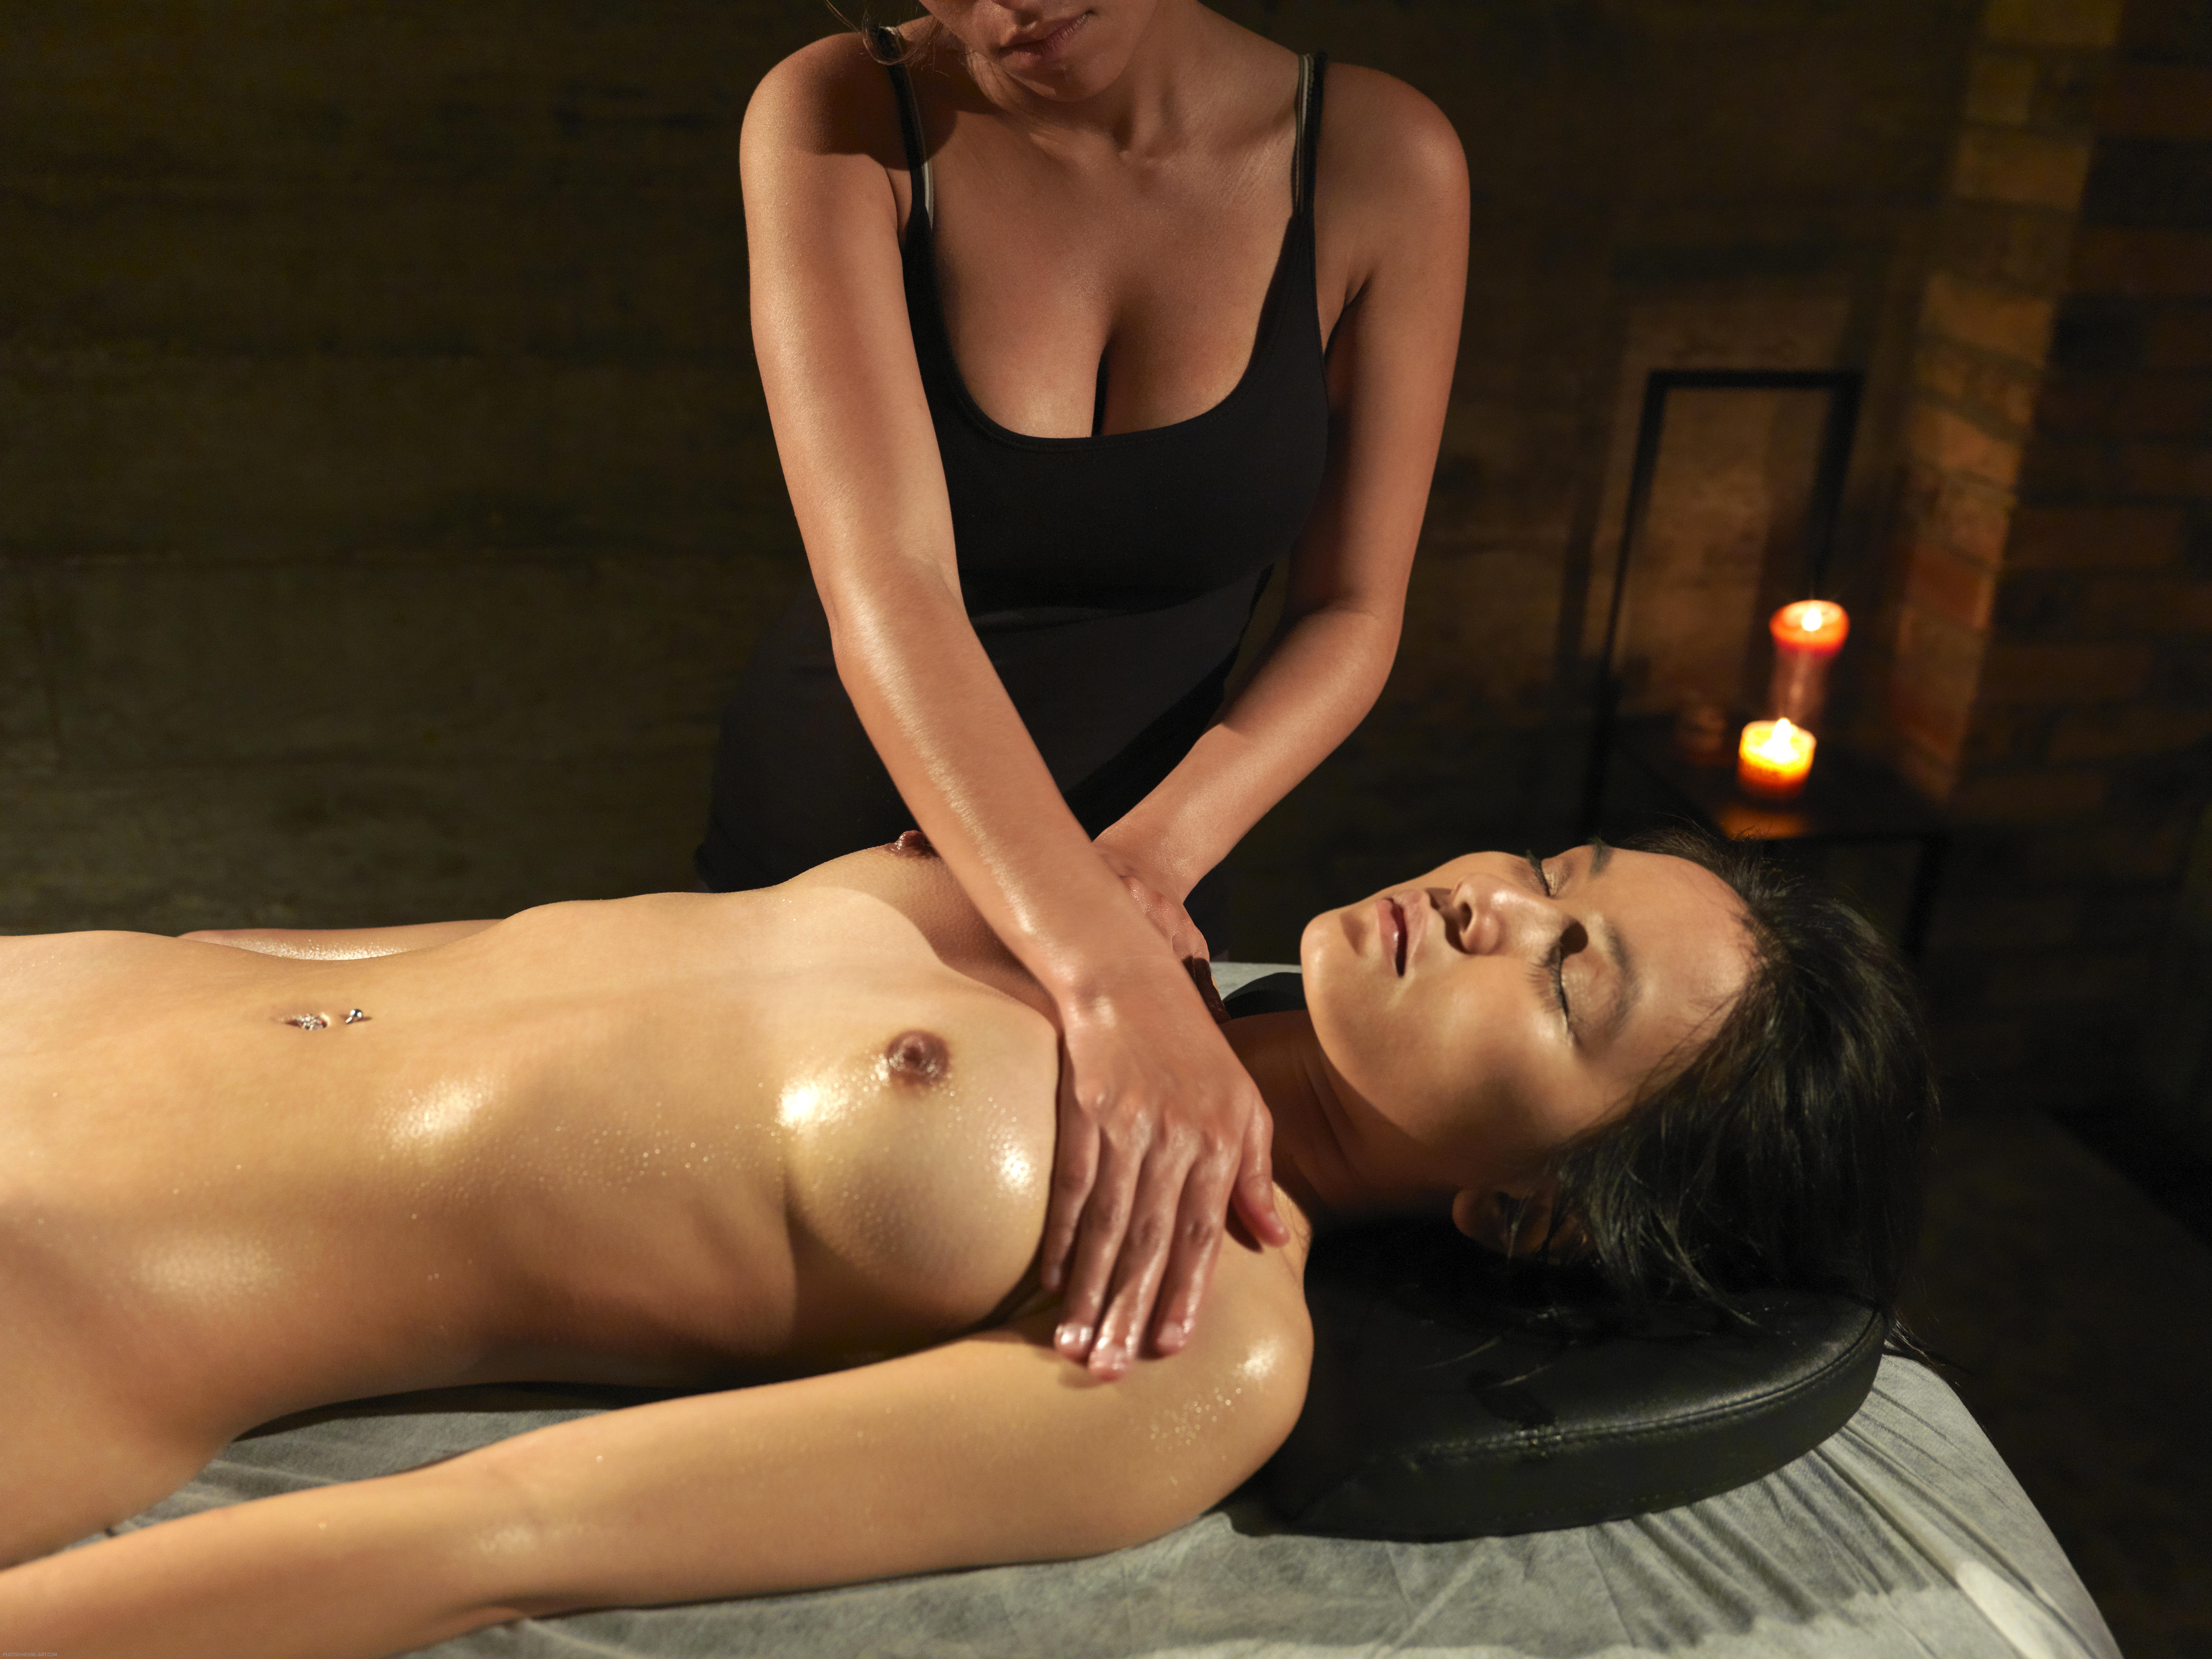 shemale forum naken massage